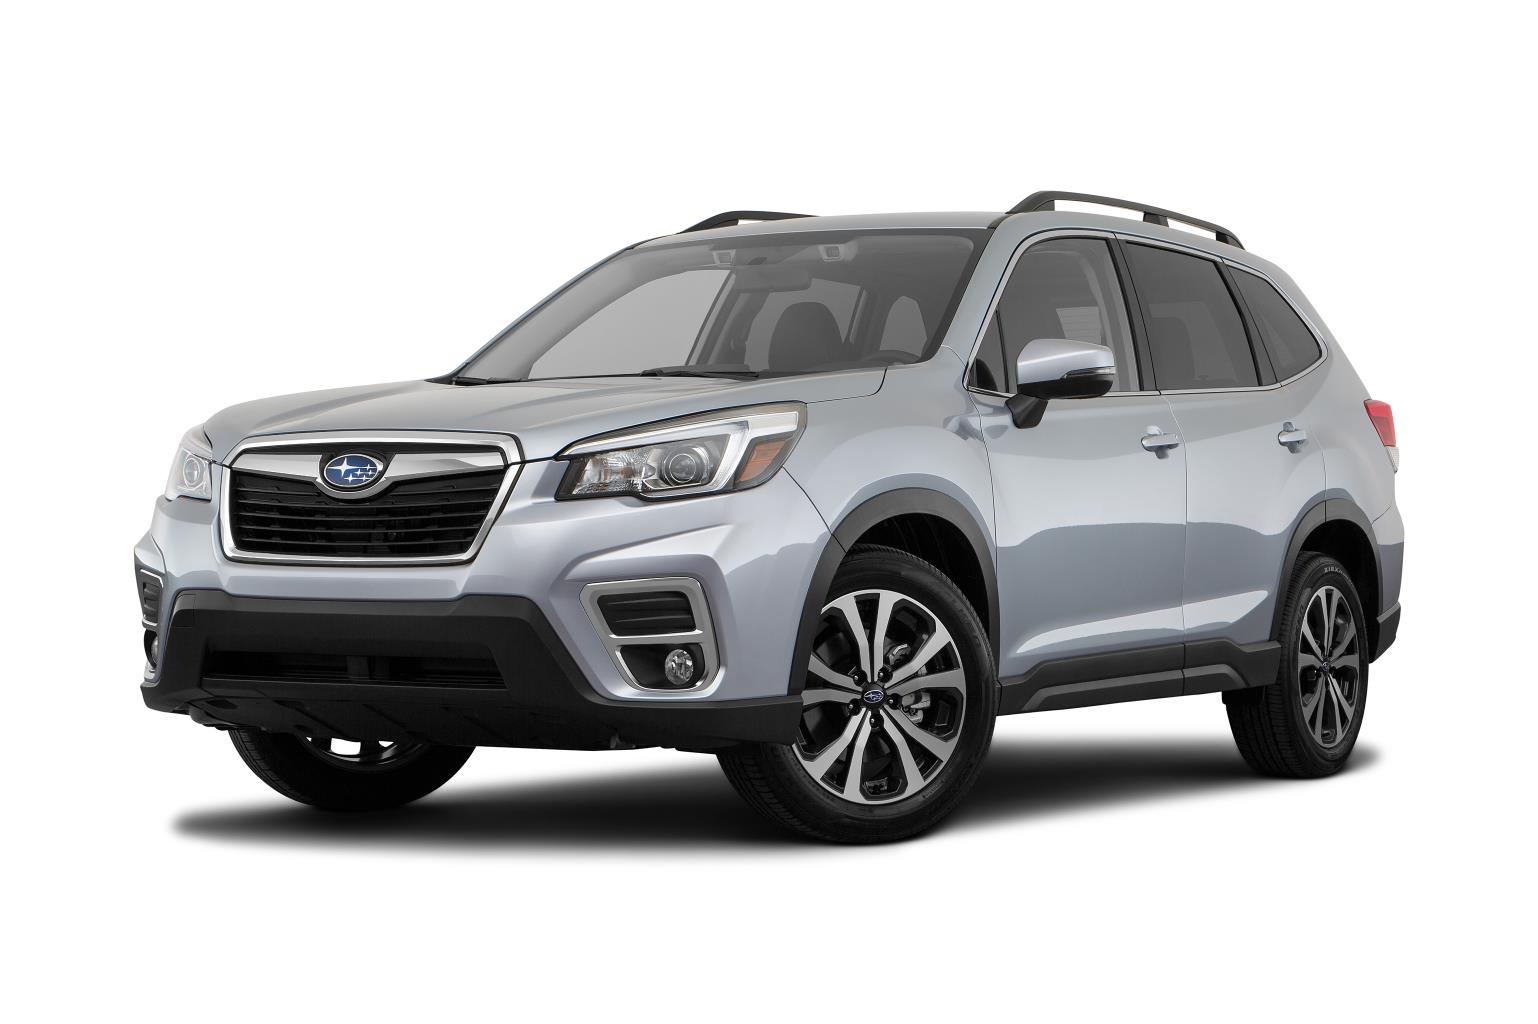 2019 subaru forester msrp starts at 24 295. Black Bedroom Furniture Sets. Home Design Ideas